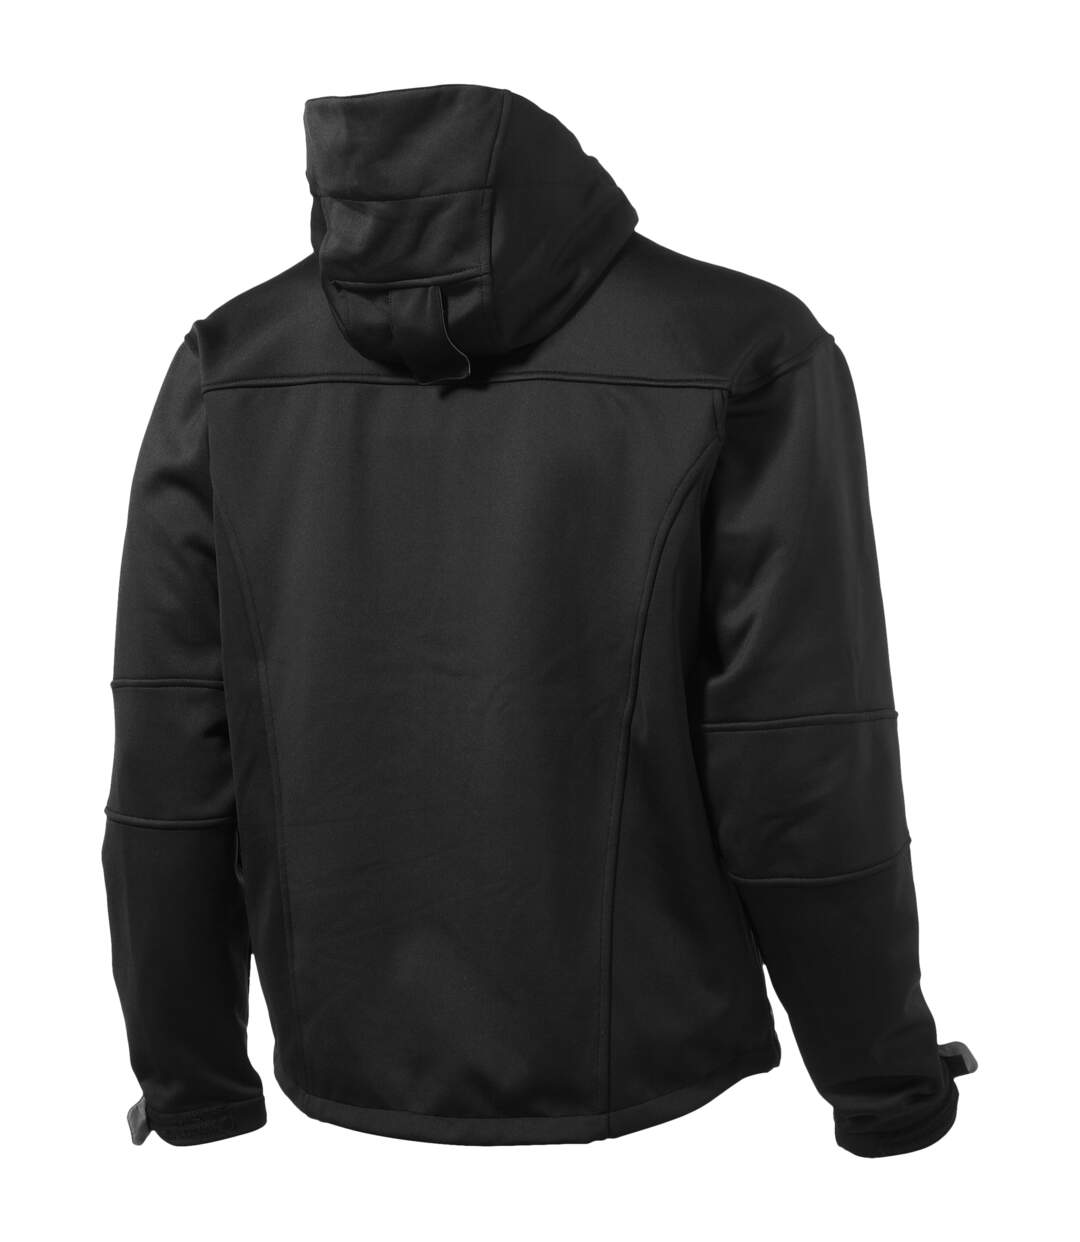 Slazenger Mens Match Softshell Jacket (Solid Black) - UTPF1771